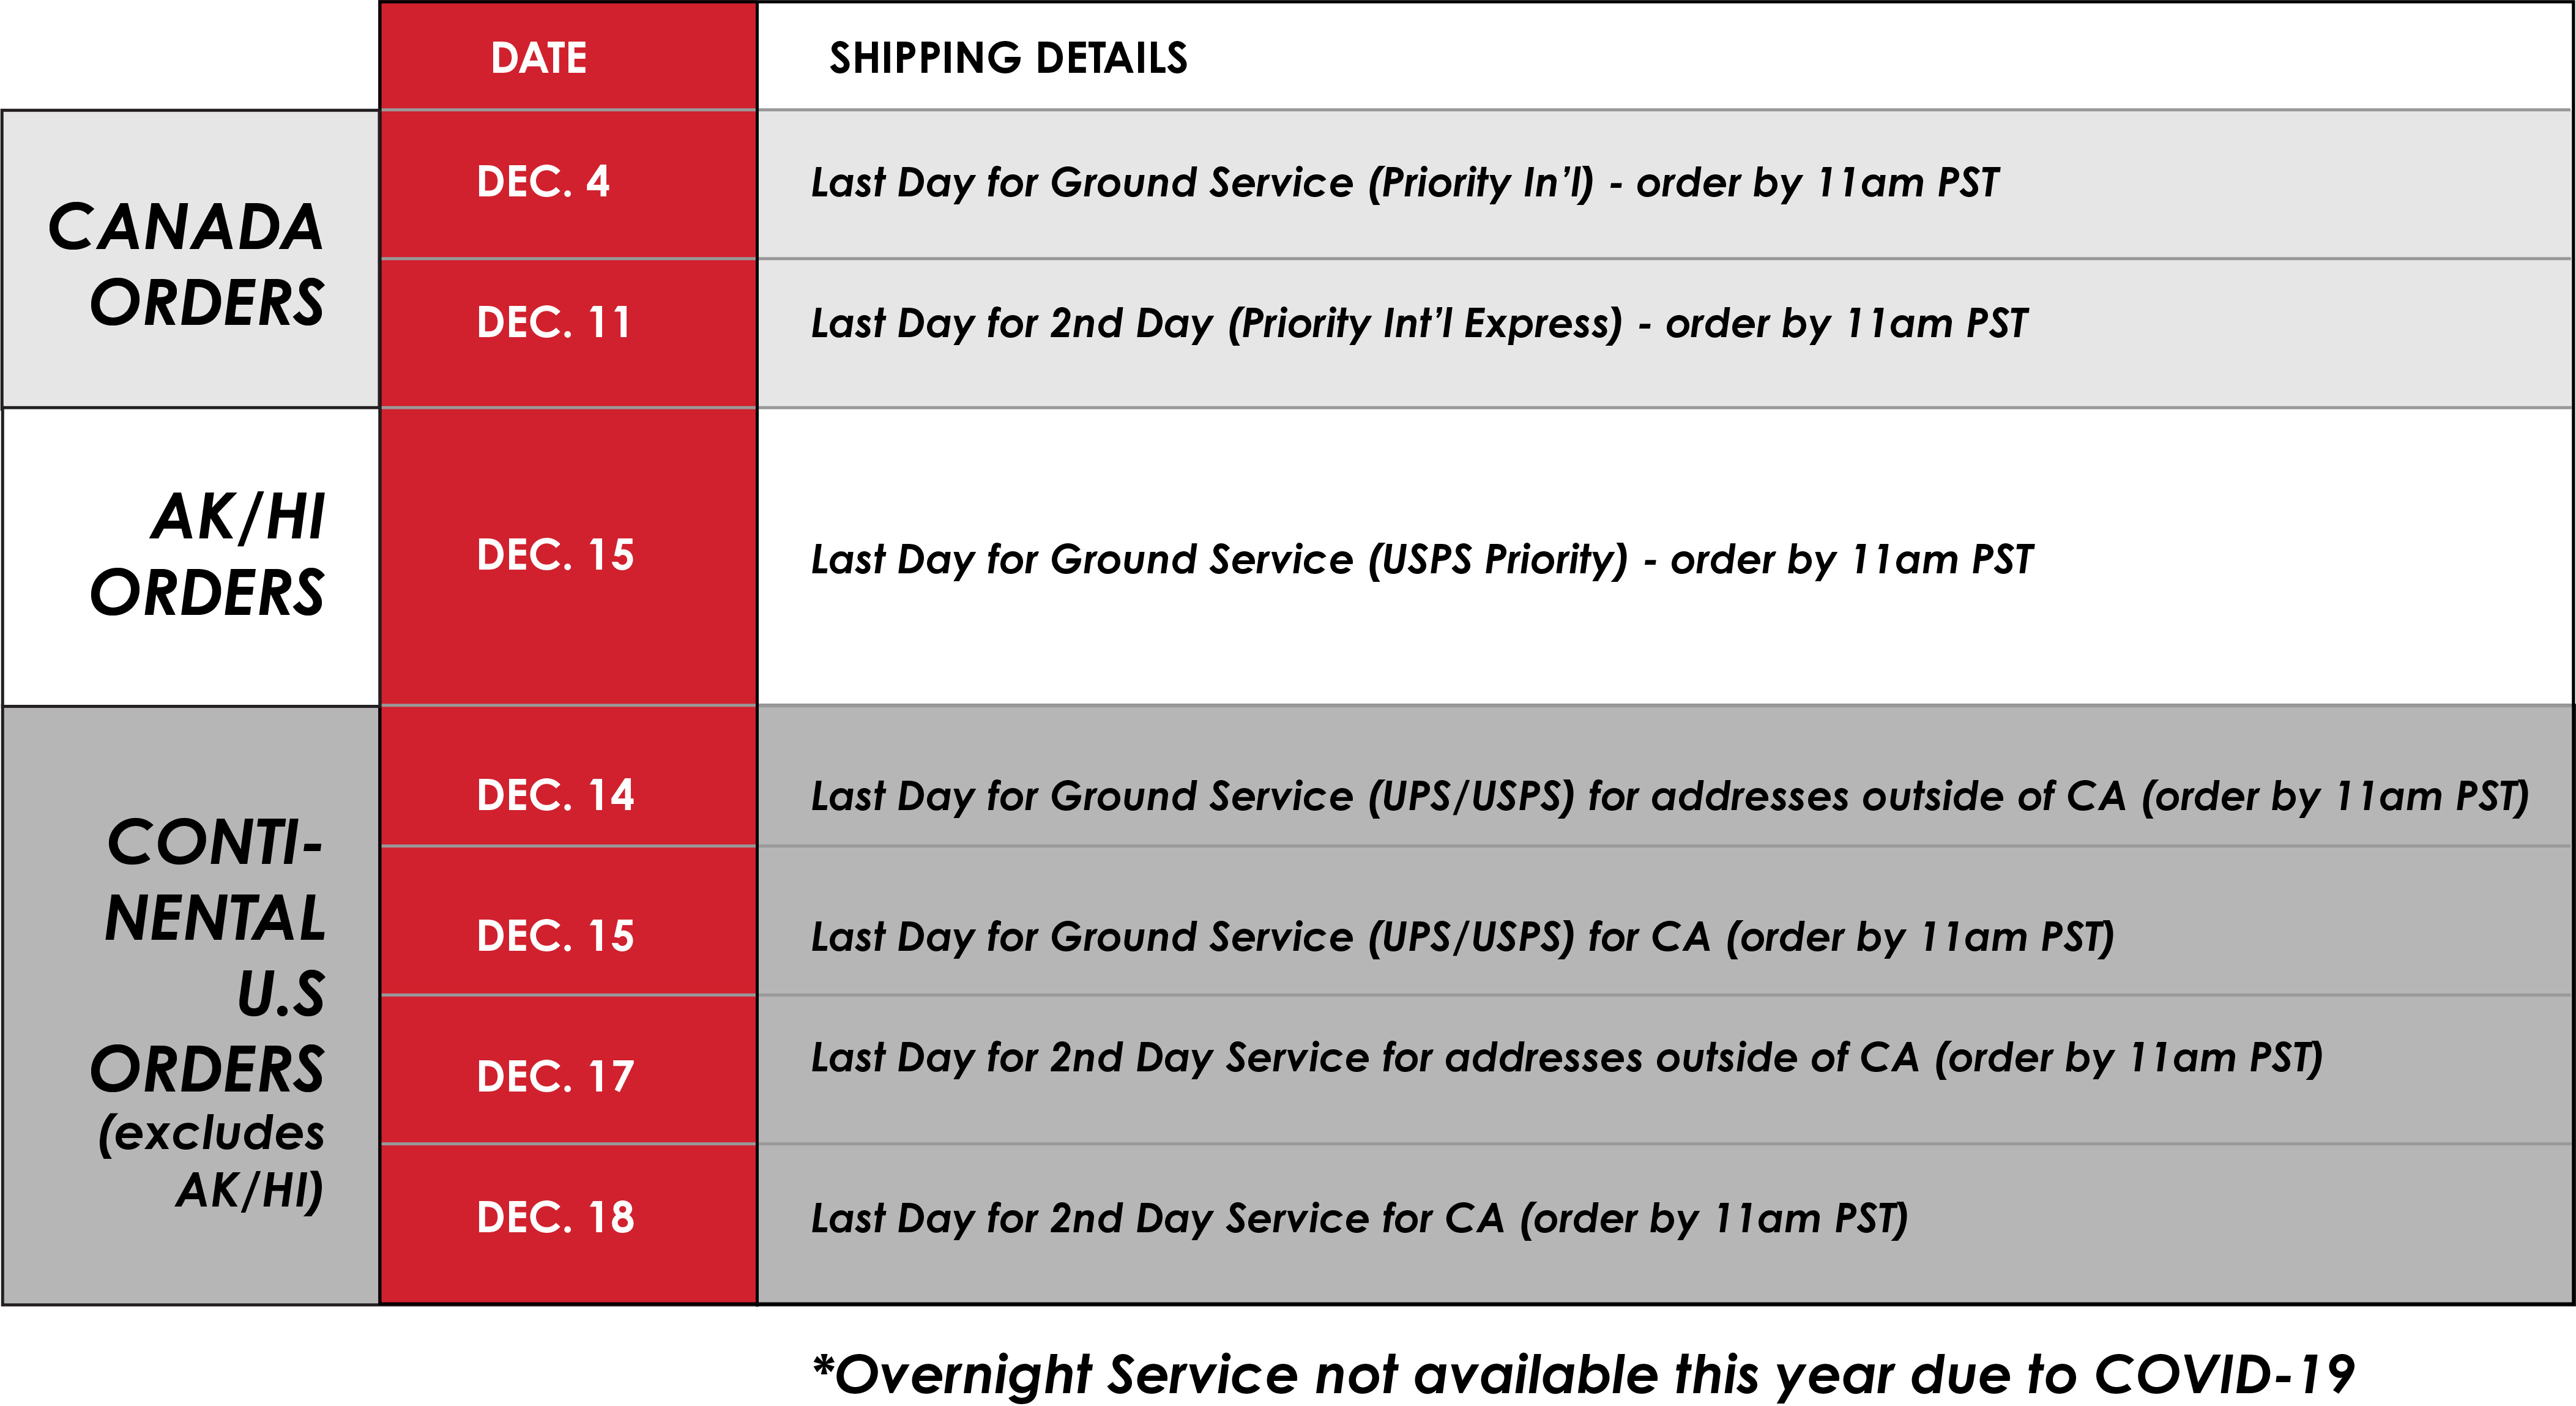 Get it By Christmas - Holiday Shipping Schedule